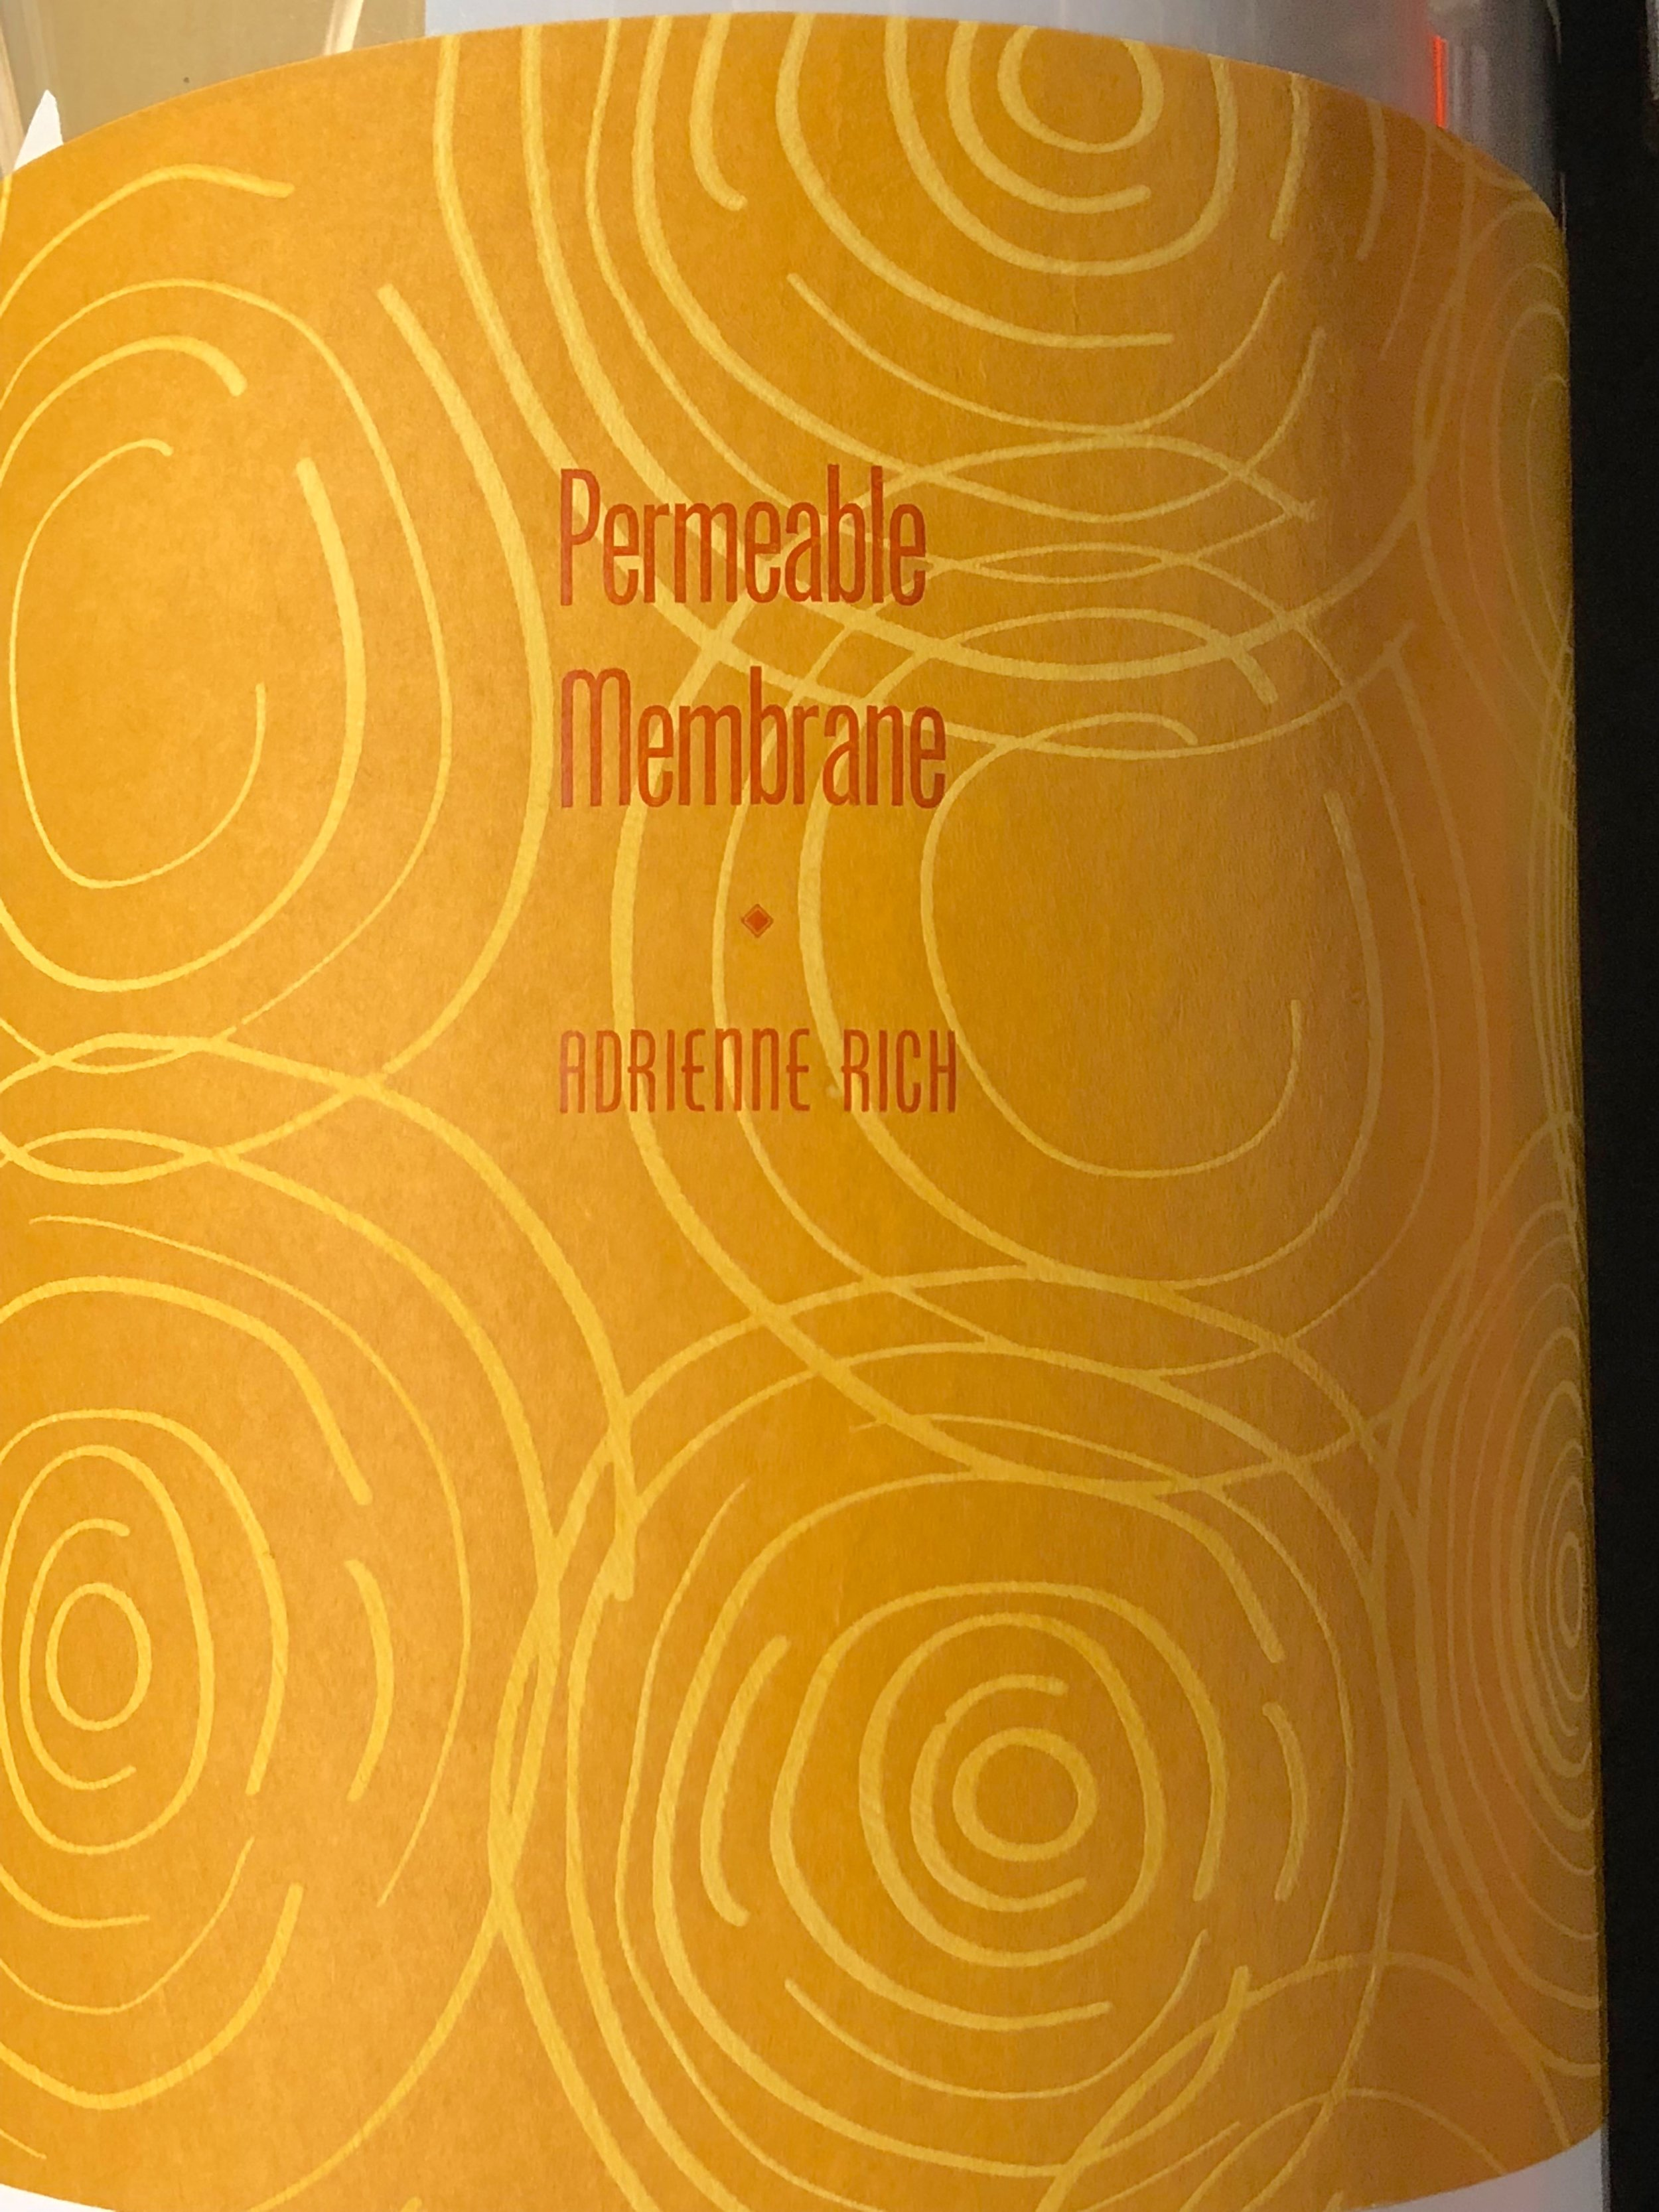 "Jacket for St Brigid Press' edition of Adrienne Rich's essay, printed letterpress on Thai mulberry ""water drops"" paper."